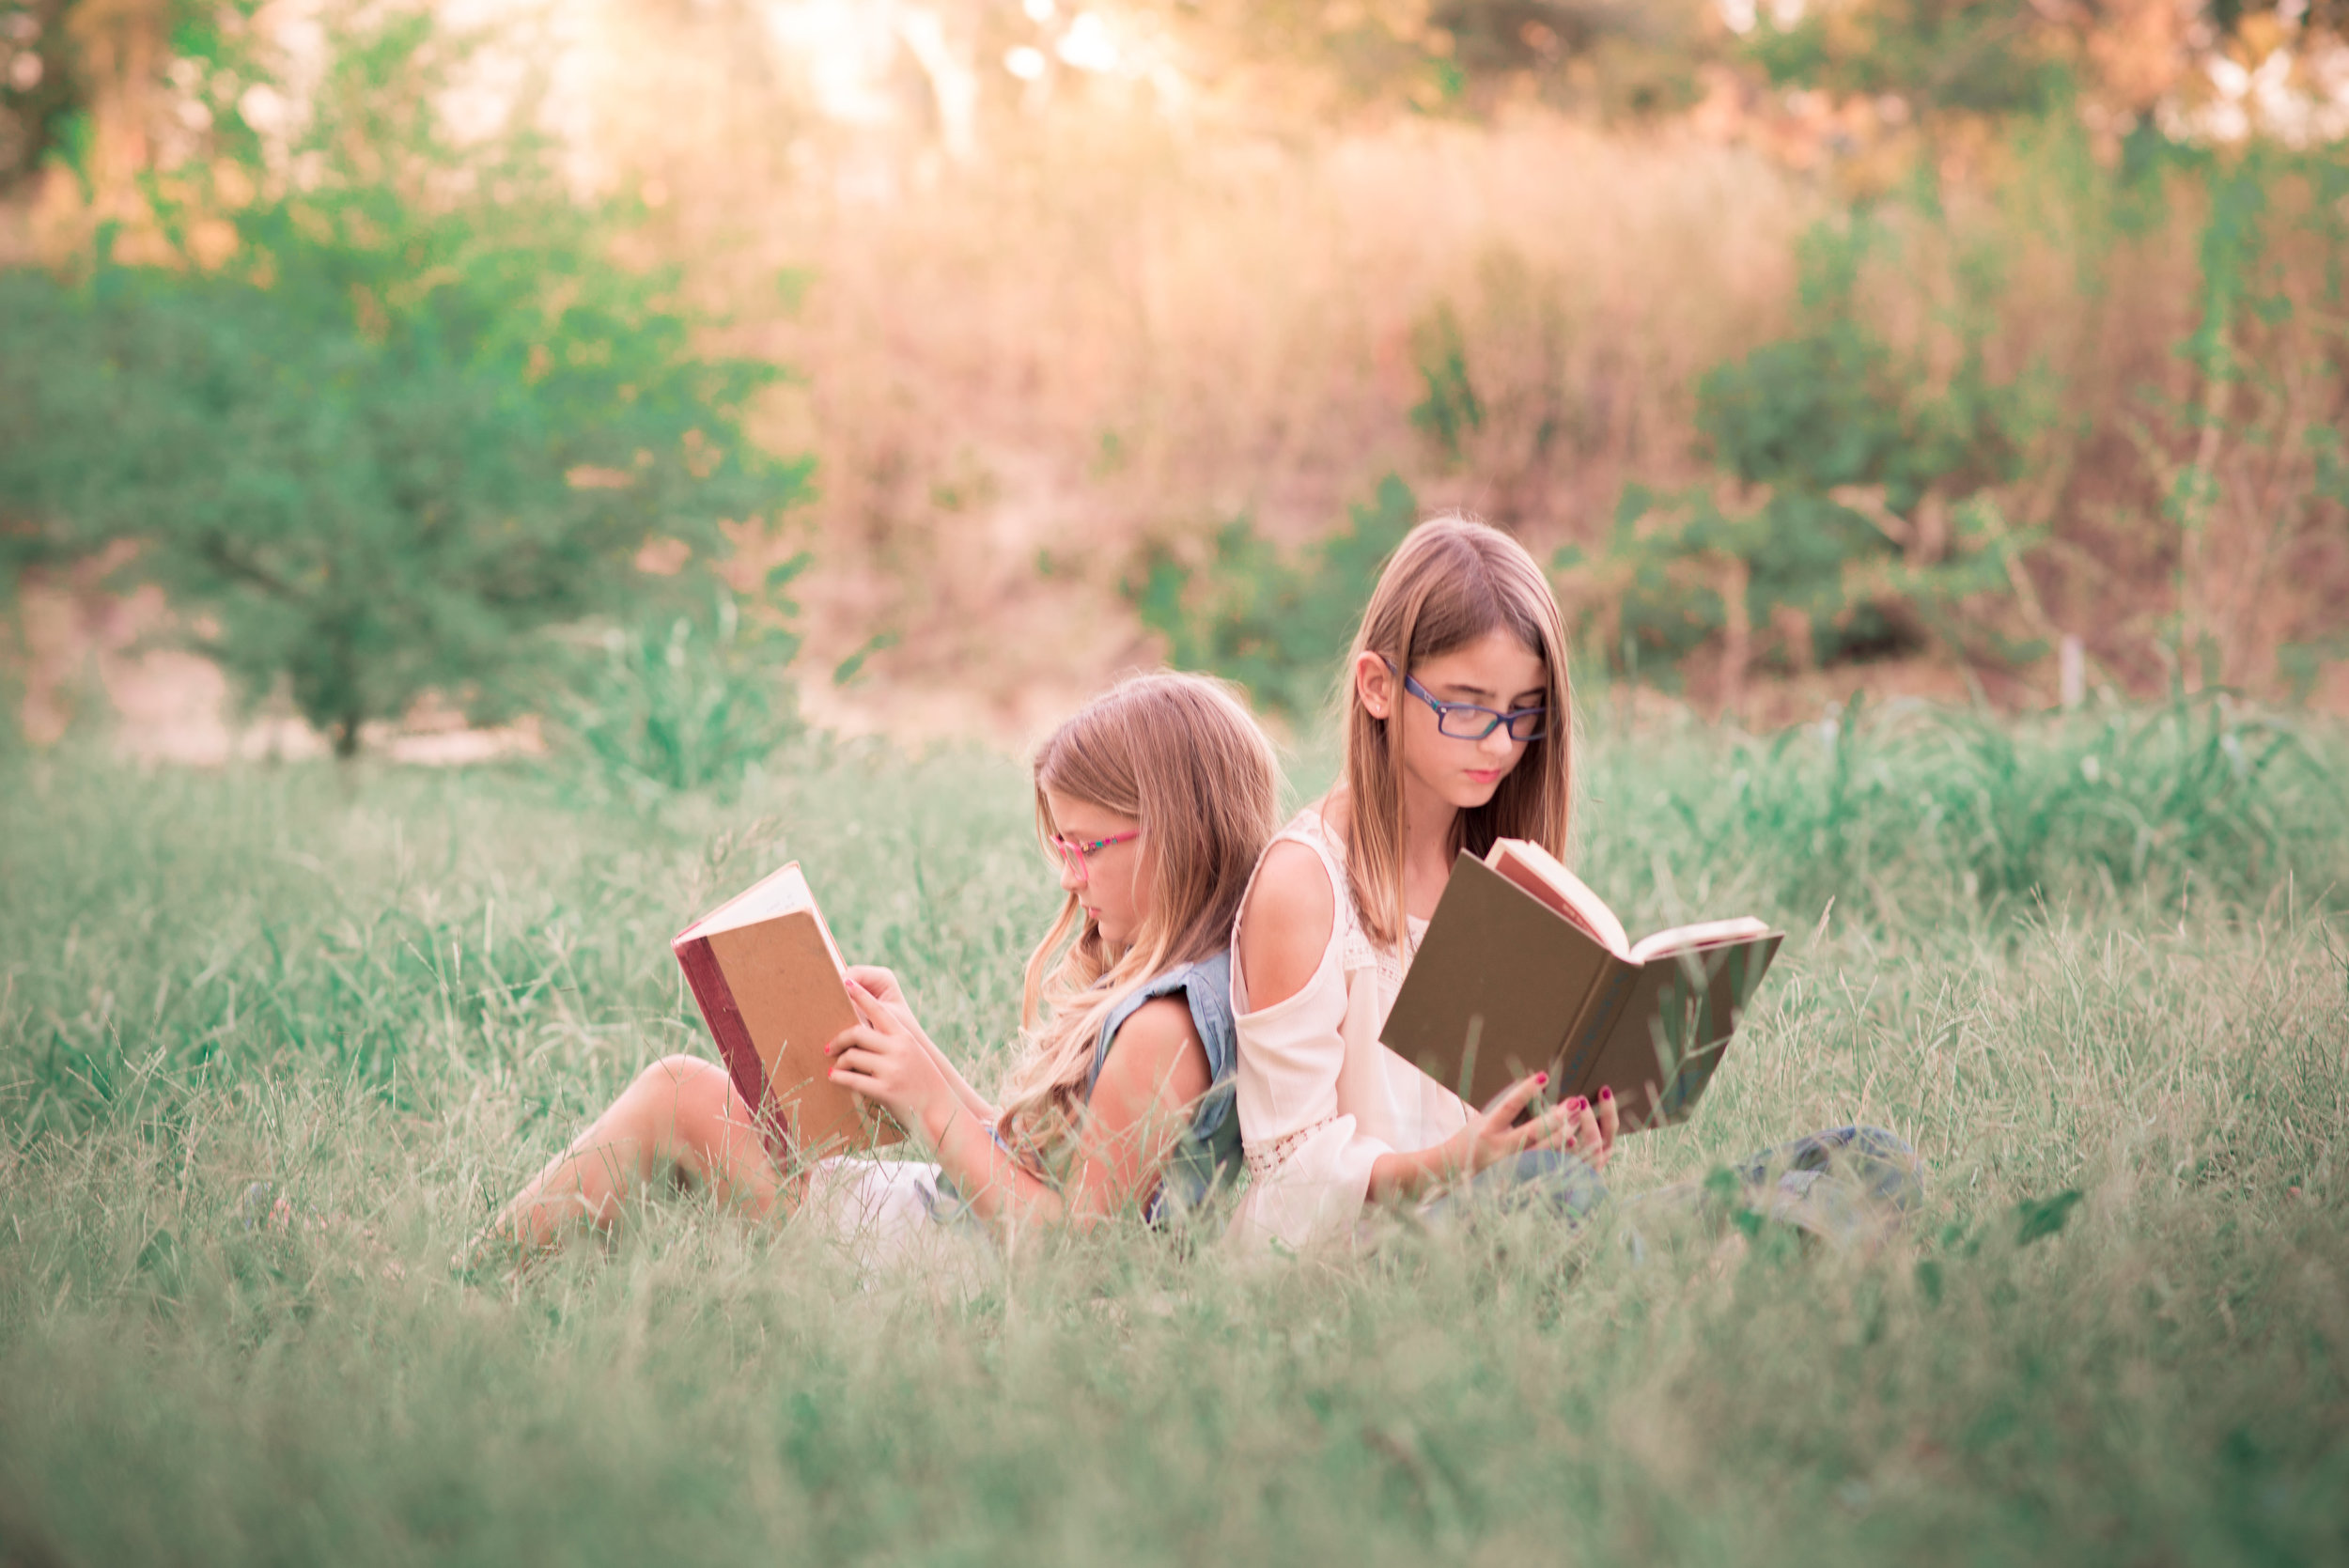 two-young-girls-reading-books-in-a-field